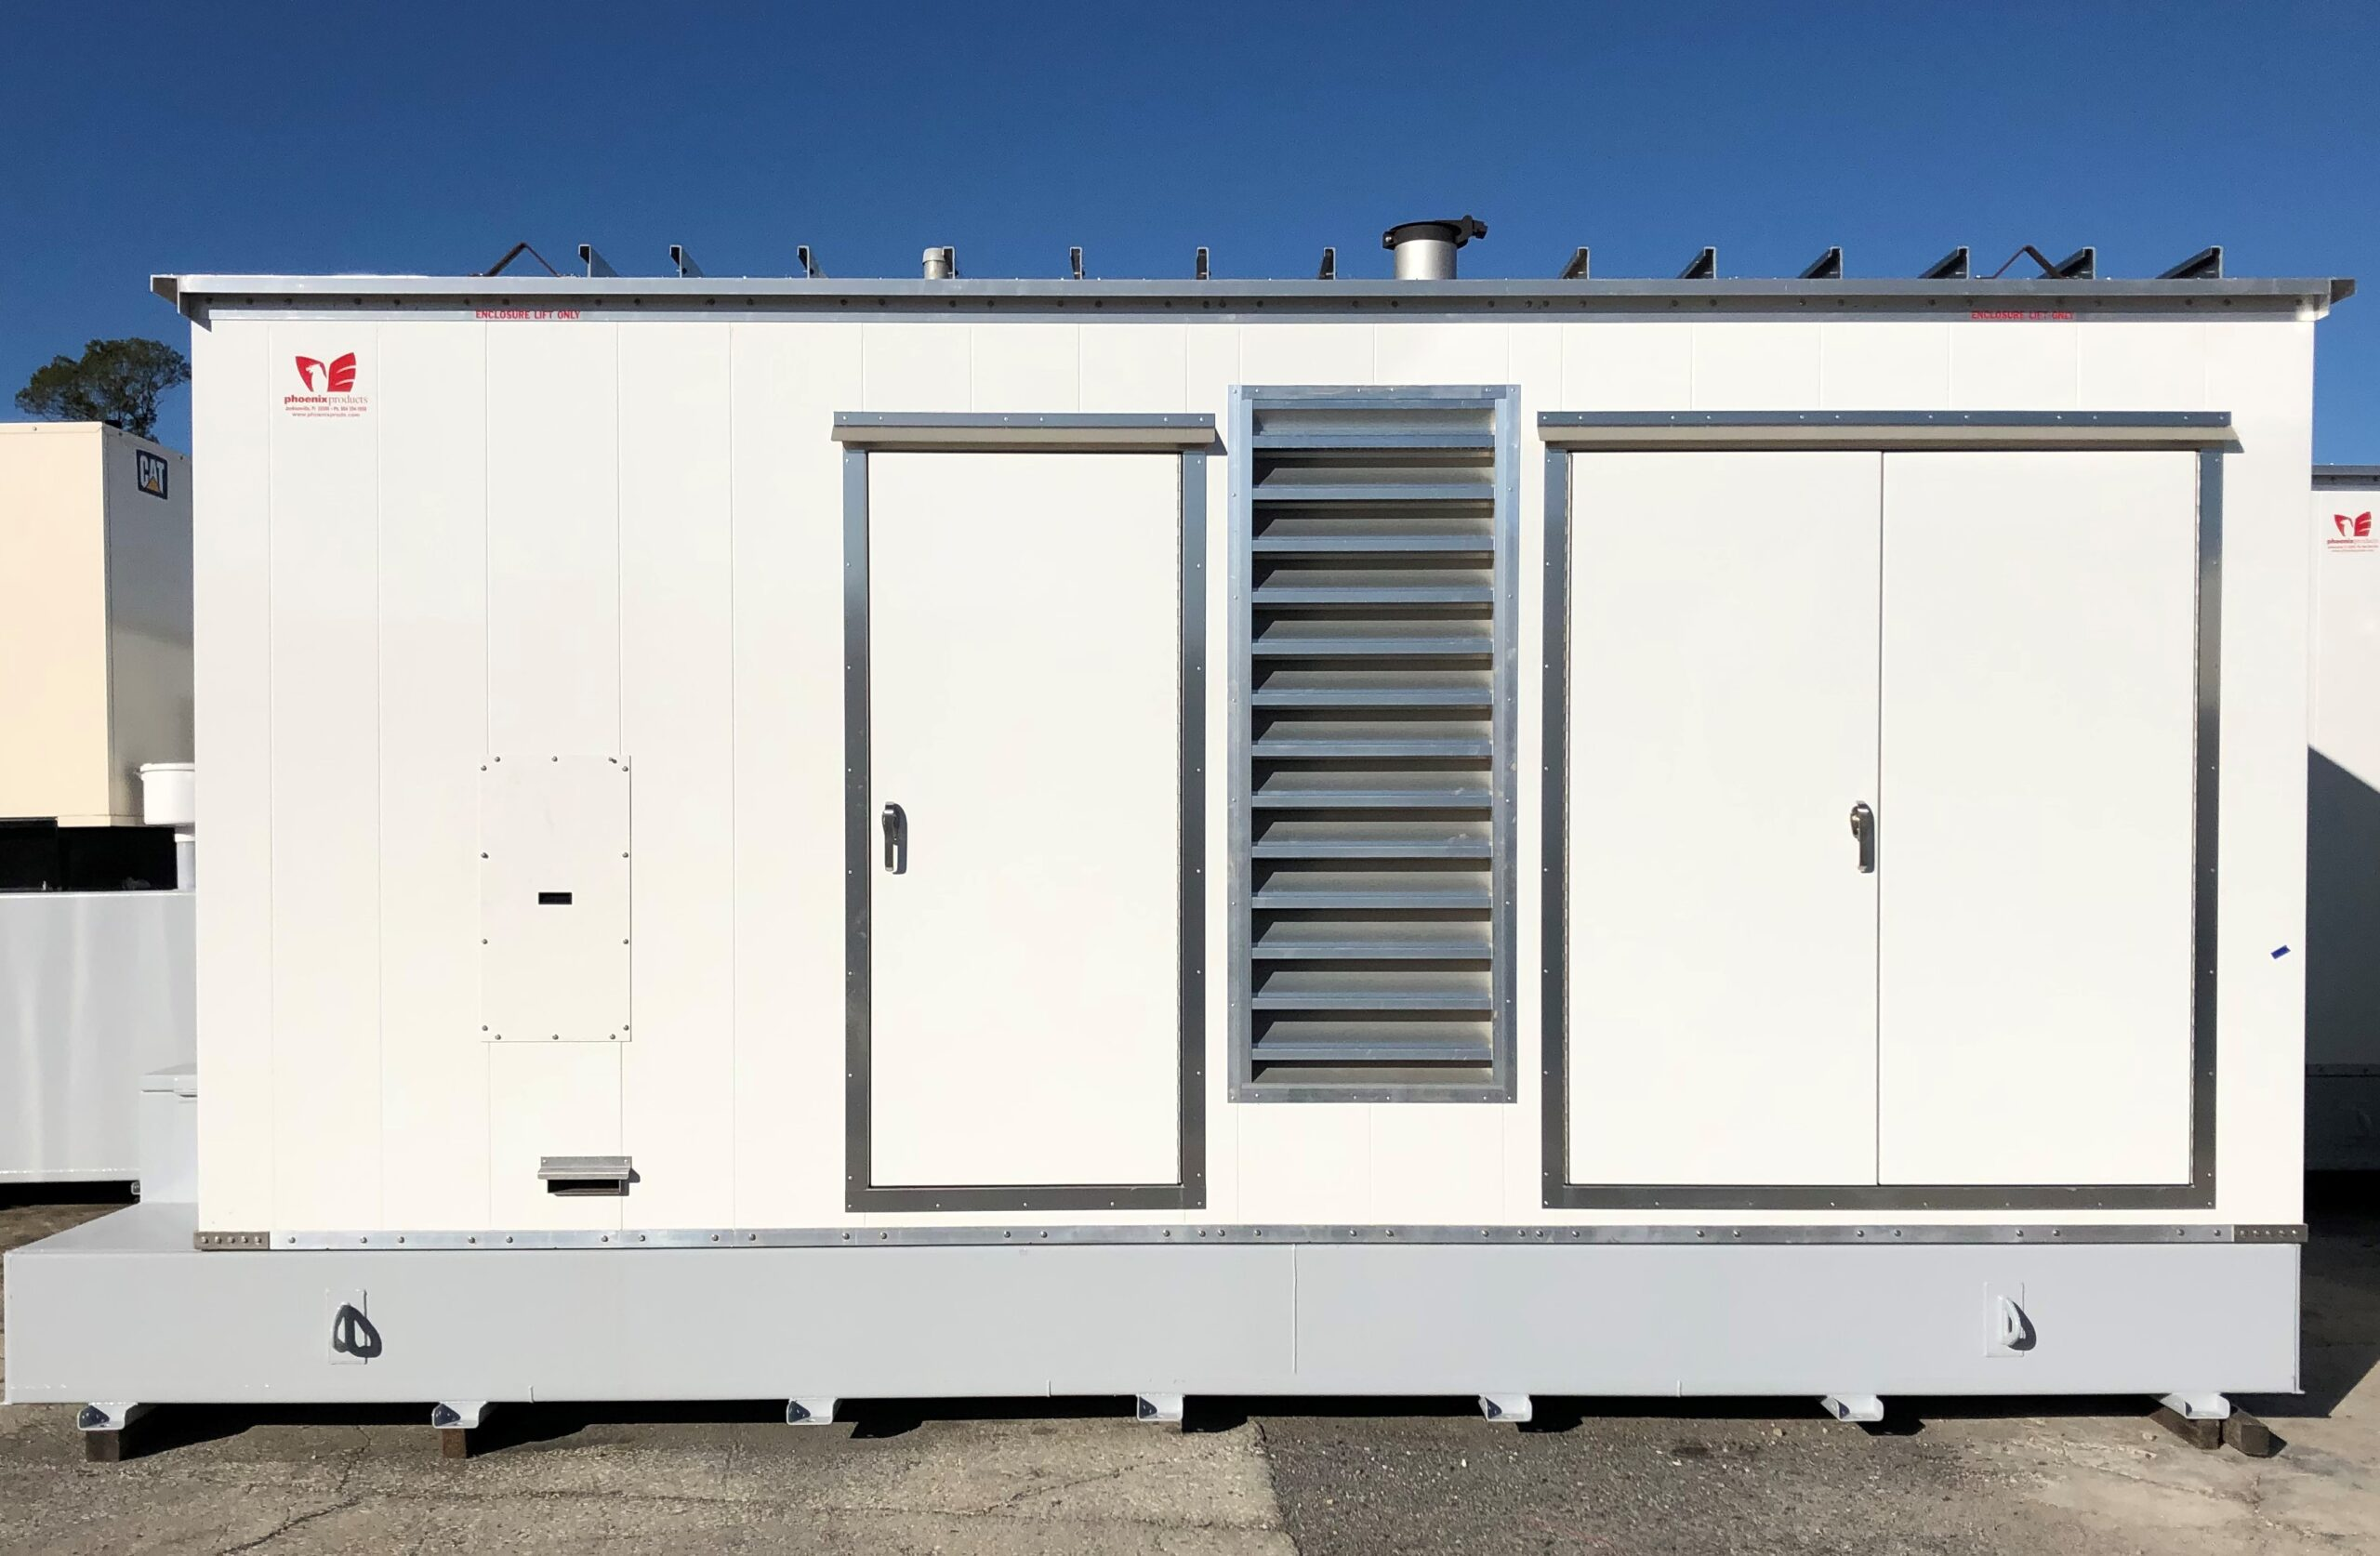 Custom-Aluminum-Generator-Enclosure-With-Louvers-And-Double-Doors-And-UL-Sub-Base-Fuel-Tank